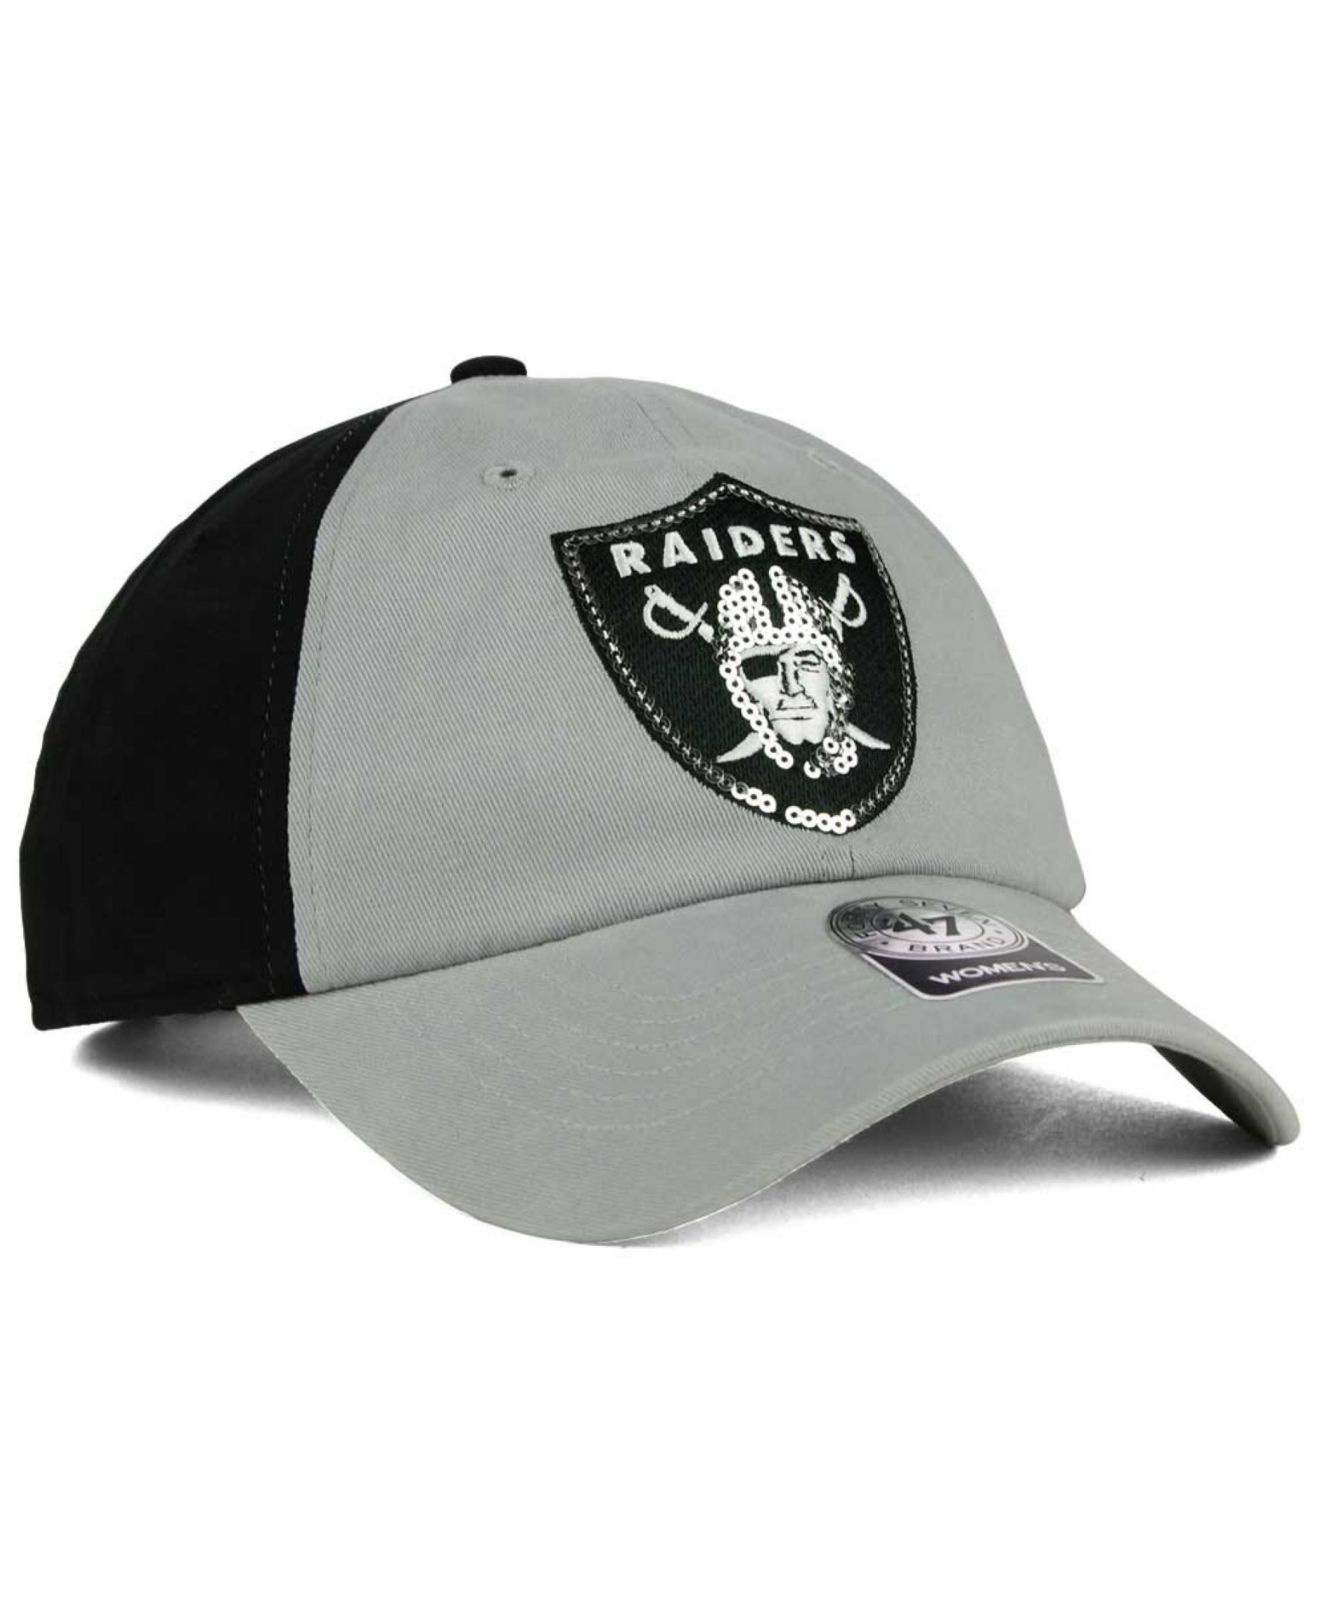 4d6850ab9 ... various design 460de 5de28 Lyst - 47 Brand Womens Oakland Raiders  Sparkle 2-tone Adjust ...